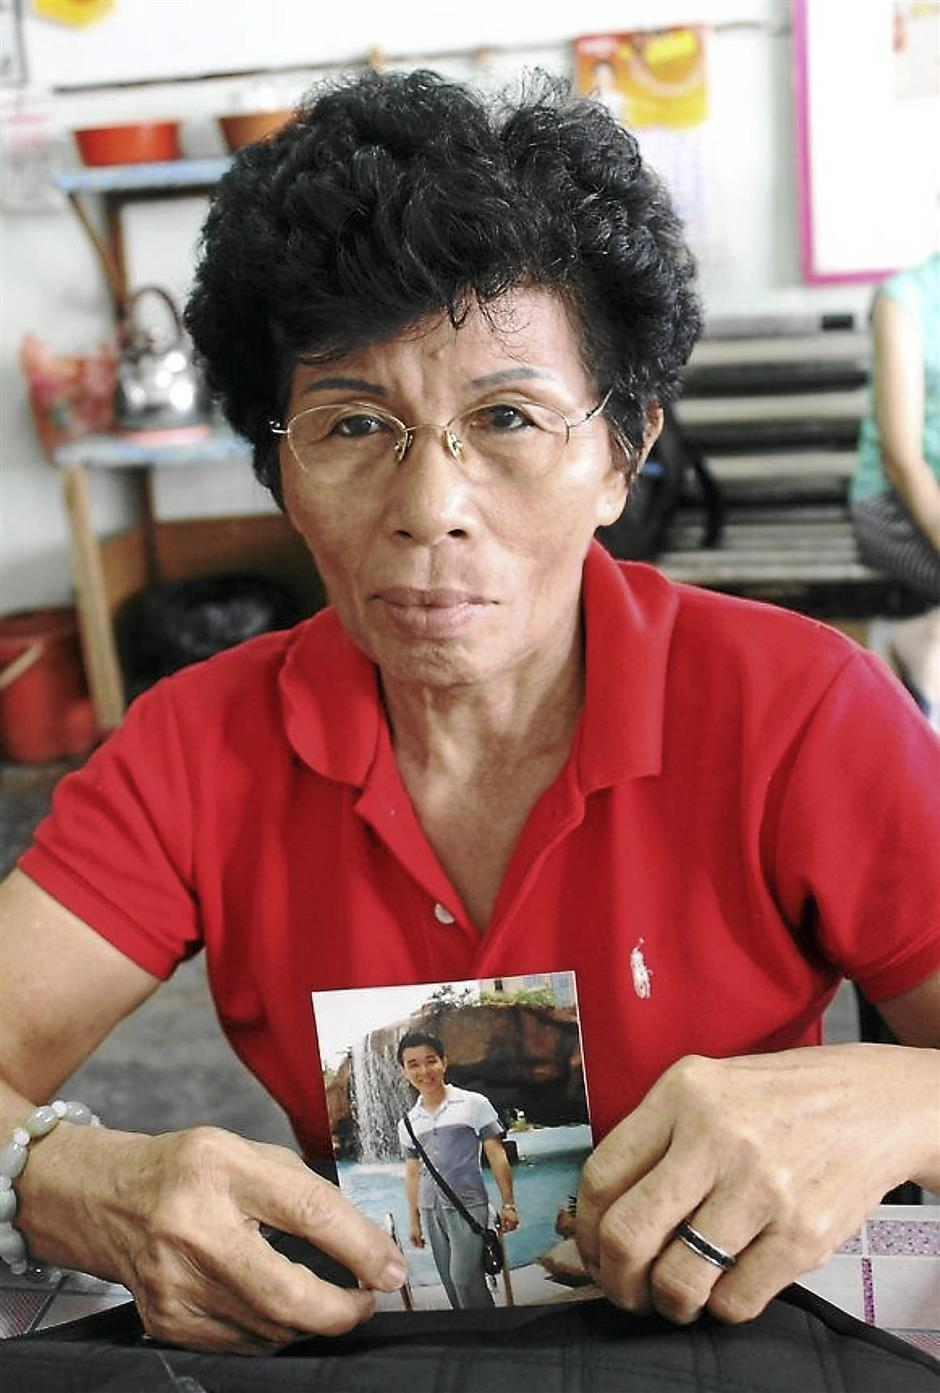 Missing her son: Chee Yoke Foong holding a picture of his son Tan Hoi Chee, who has been missing for about four years.